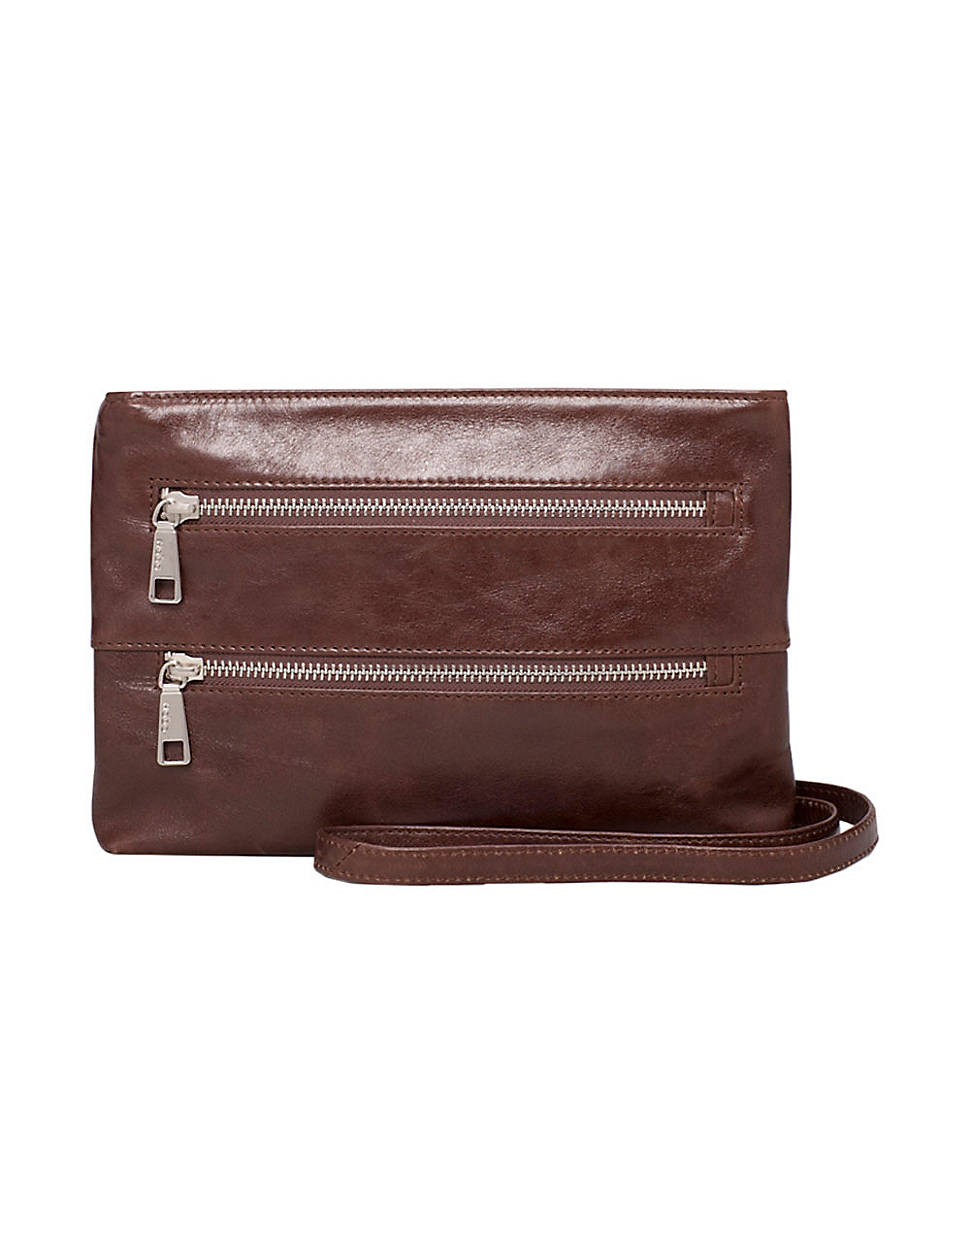 Hobo - Mara 2 Zip Crossbody